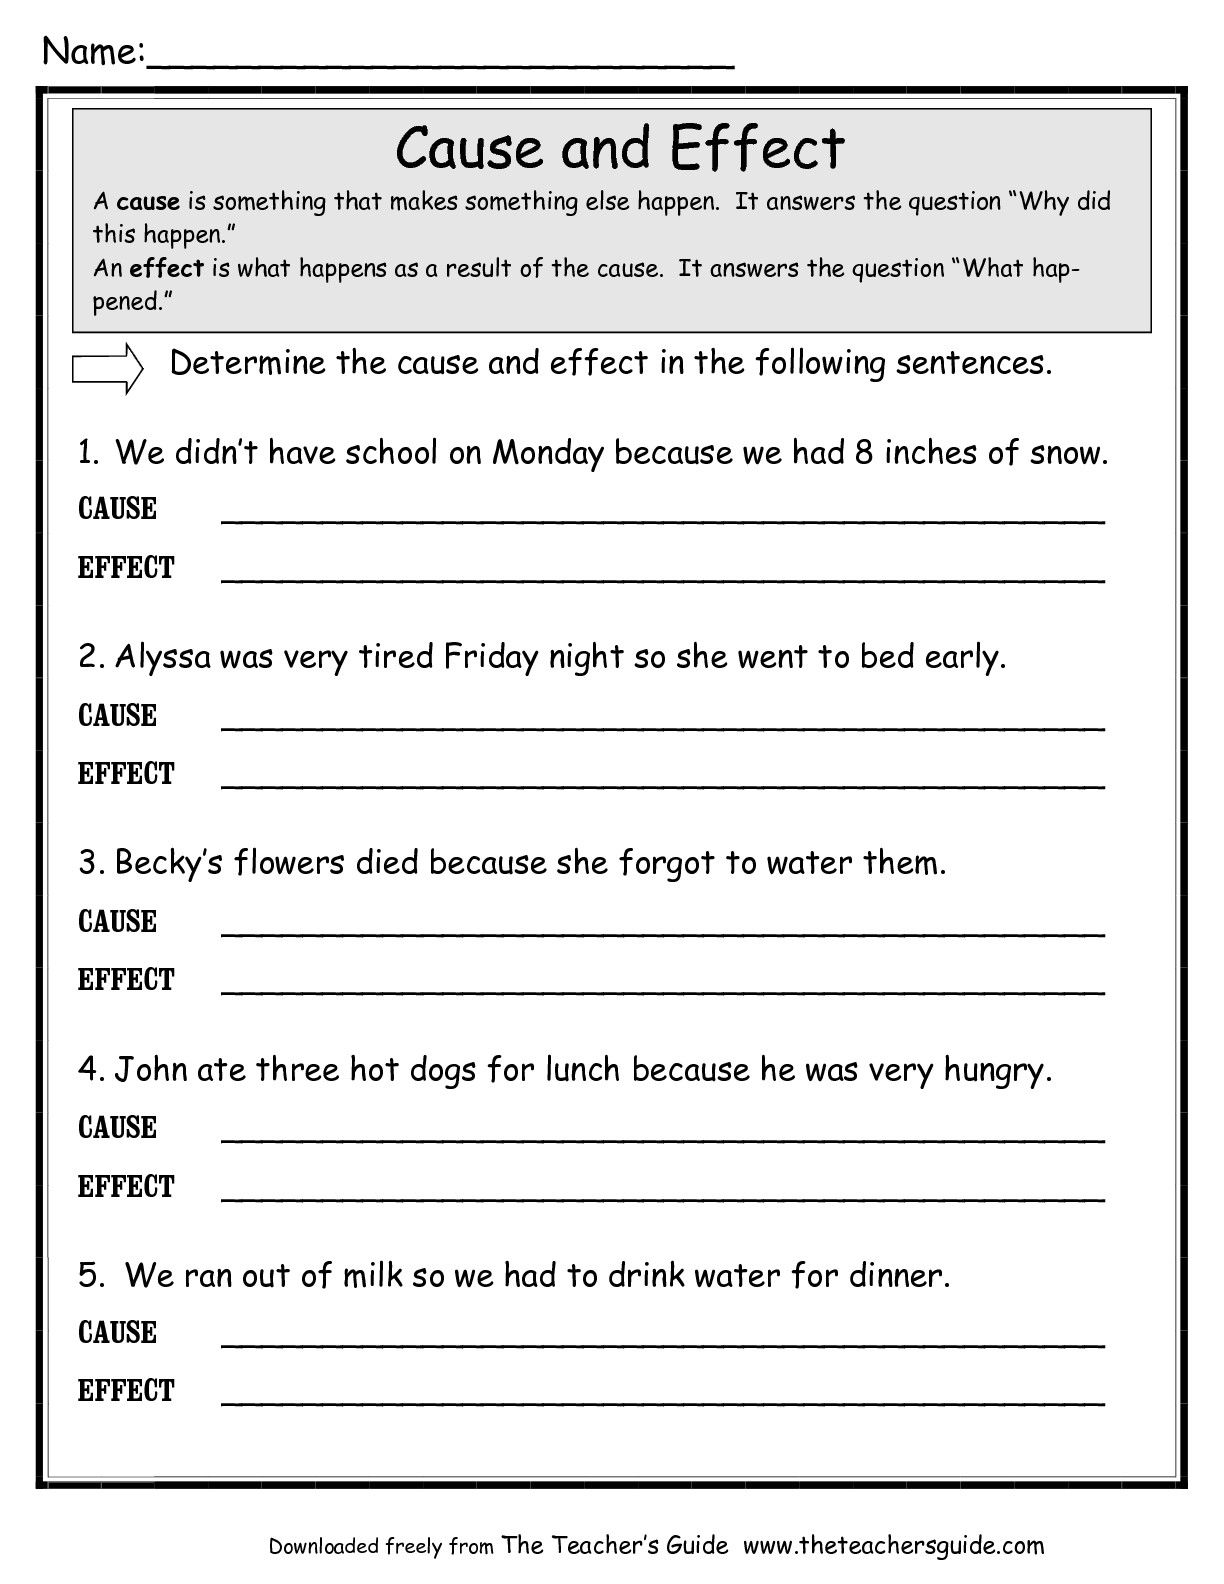 small resolution of cause and effect worksheet - Google Search   Cause and effect worksheets